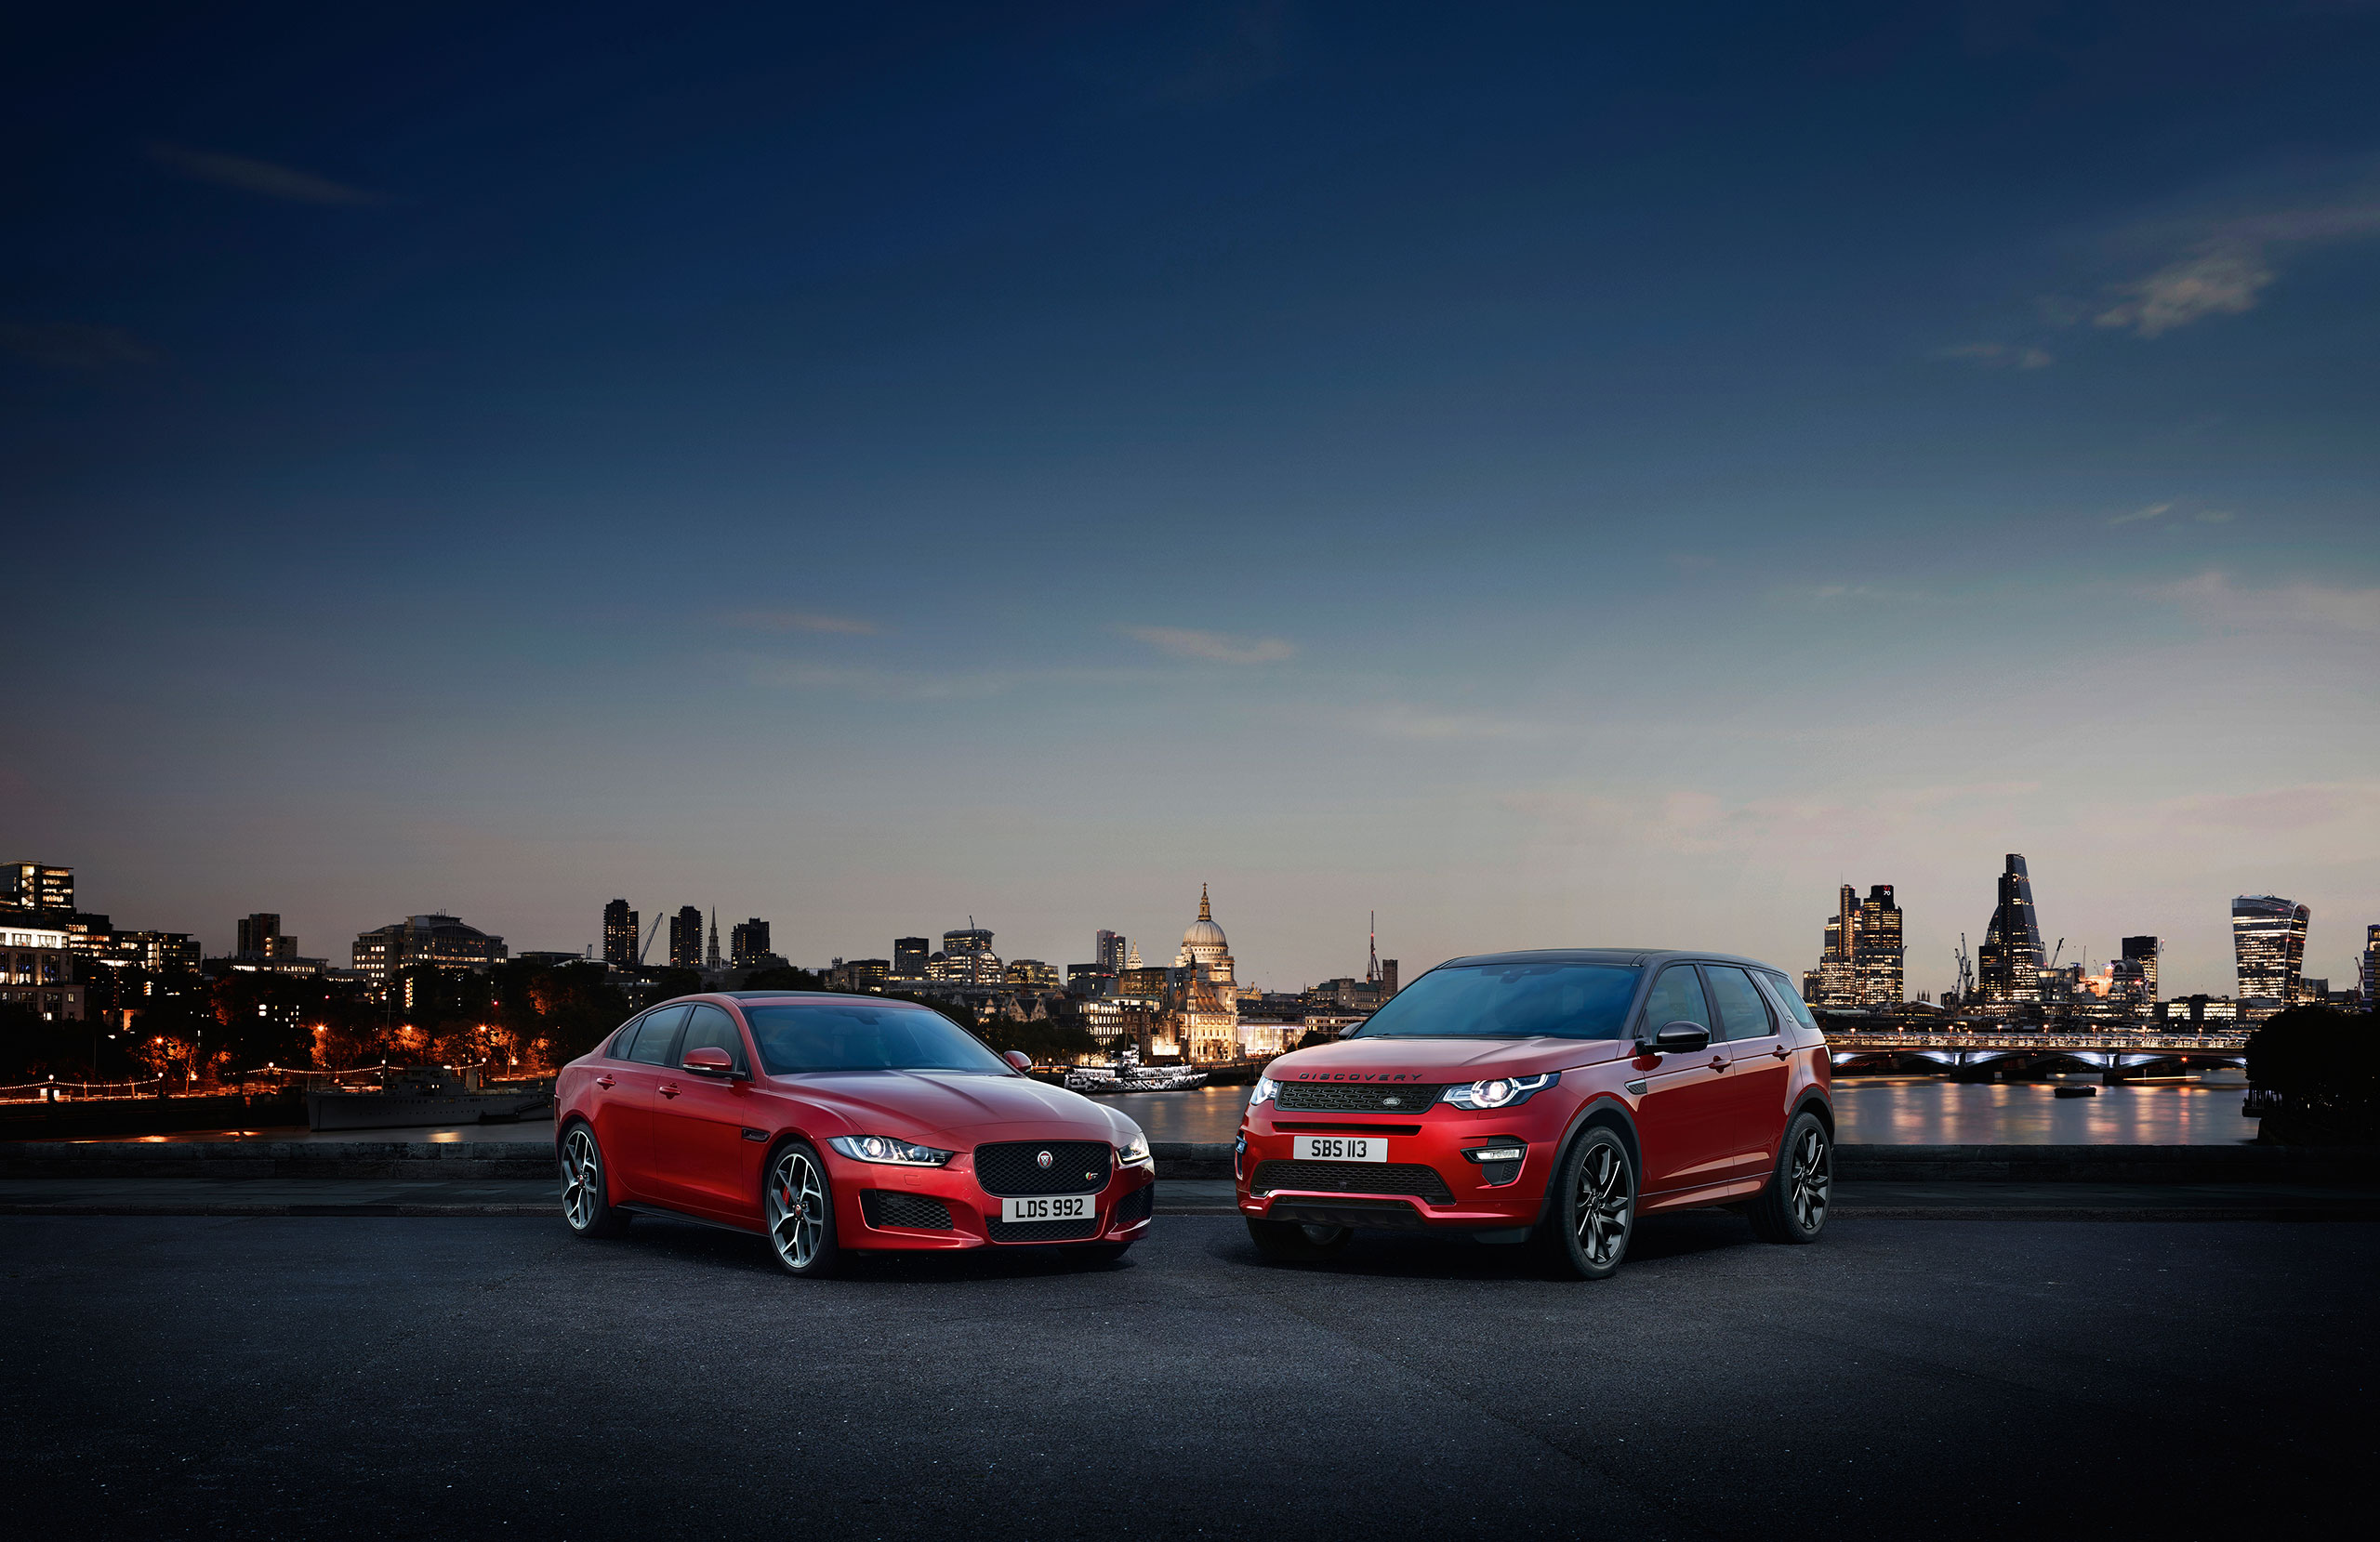 JAGUAR LAND ROVER INCREASES STAKE IN CONNECTED CAR PROGRAMME